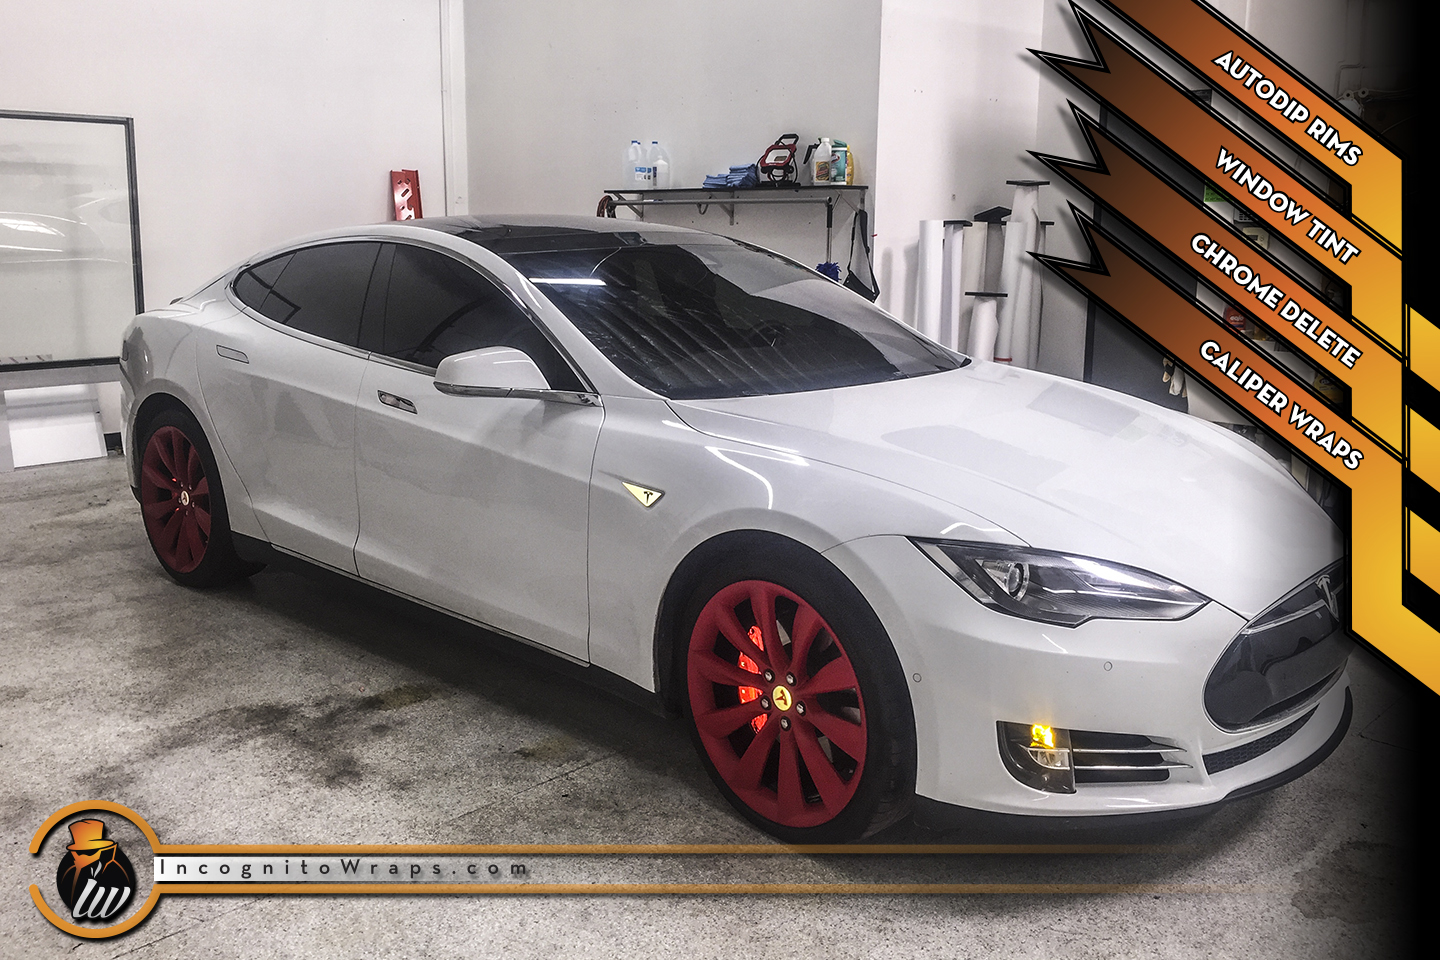 Tesla Model S - Reflective Calipers, AutoDip Rims and Chrome Delete